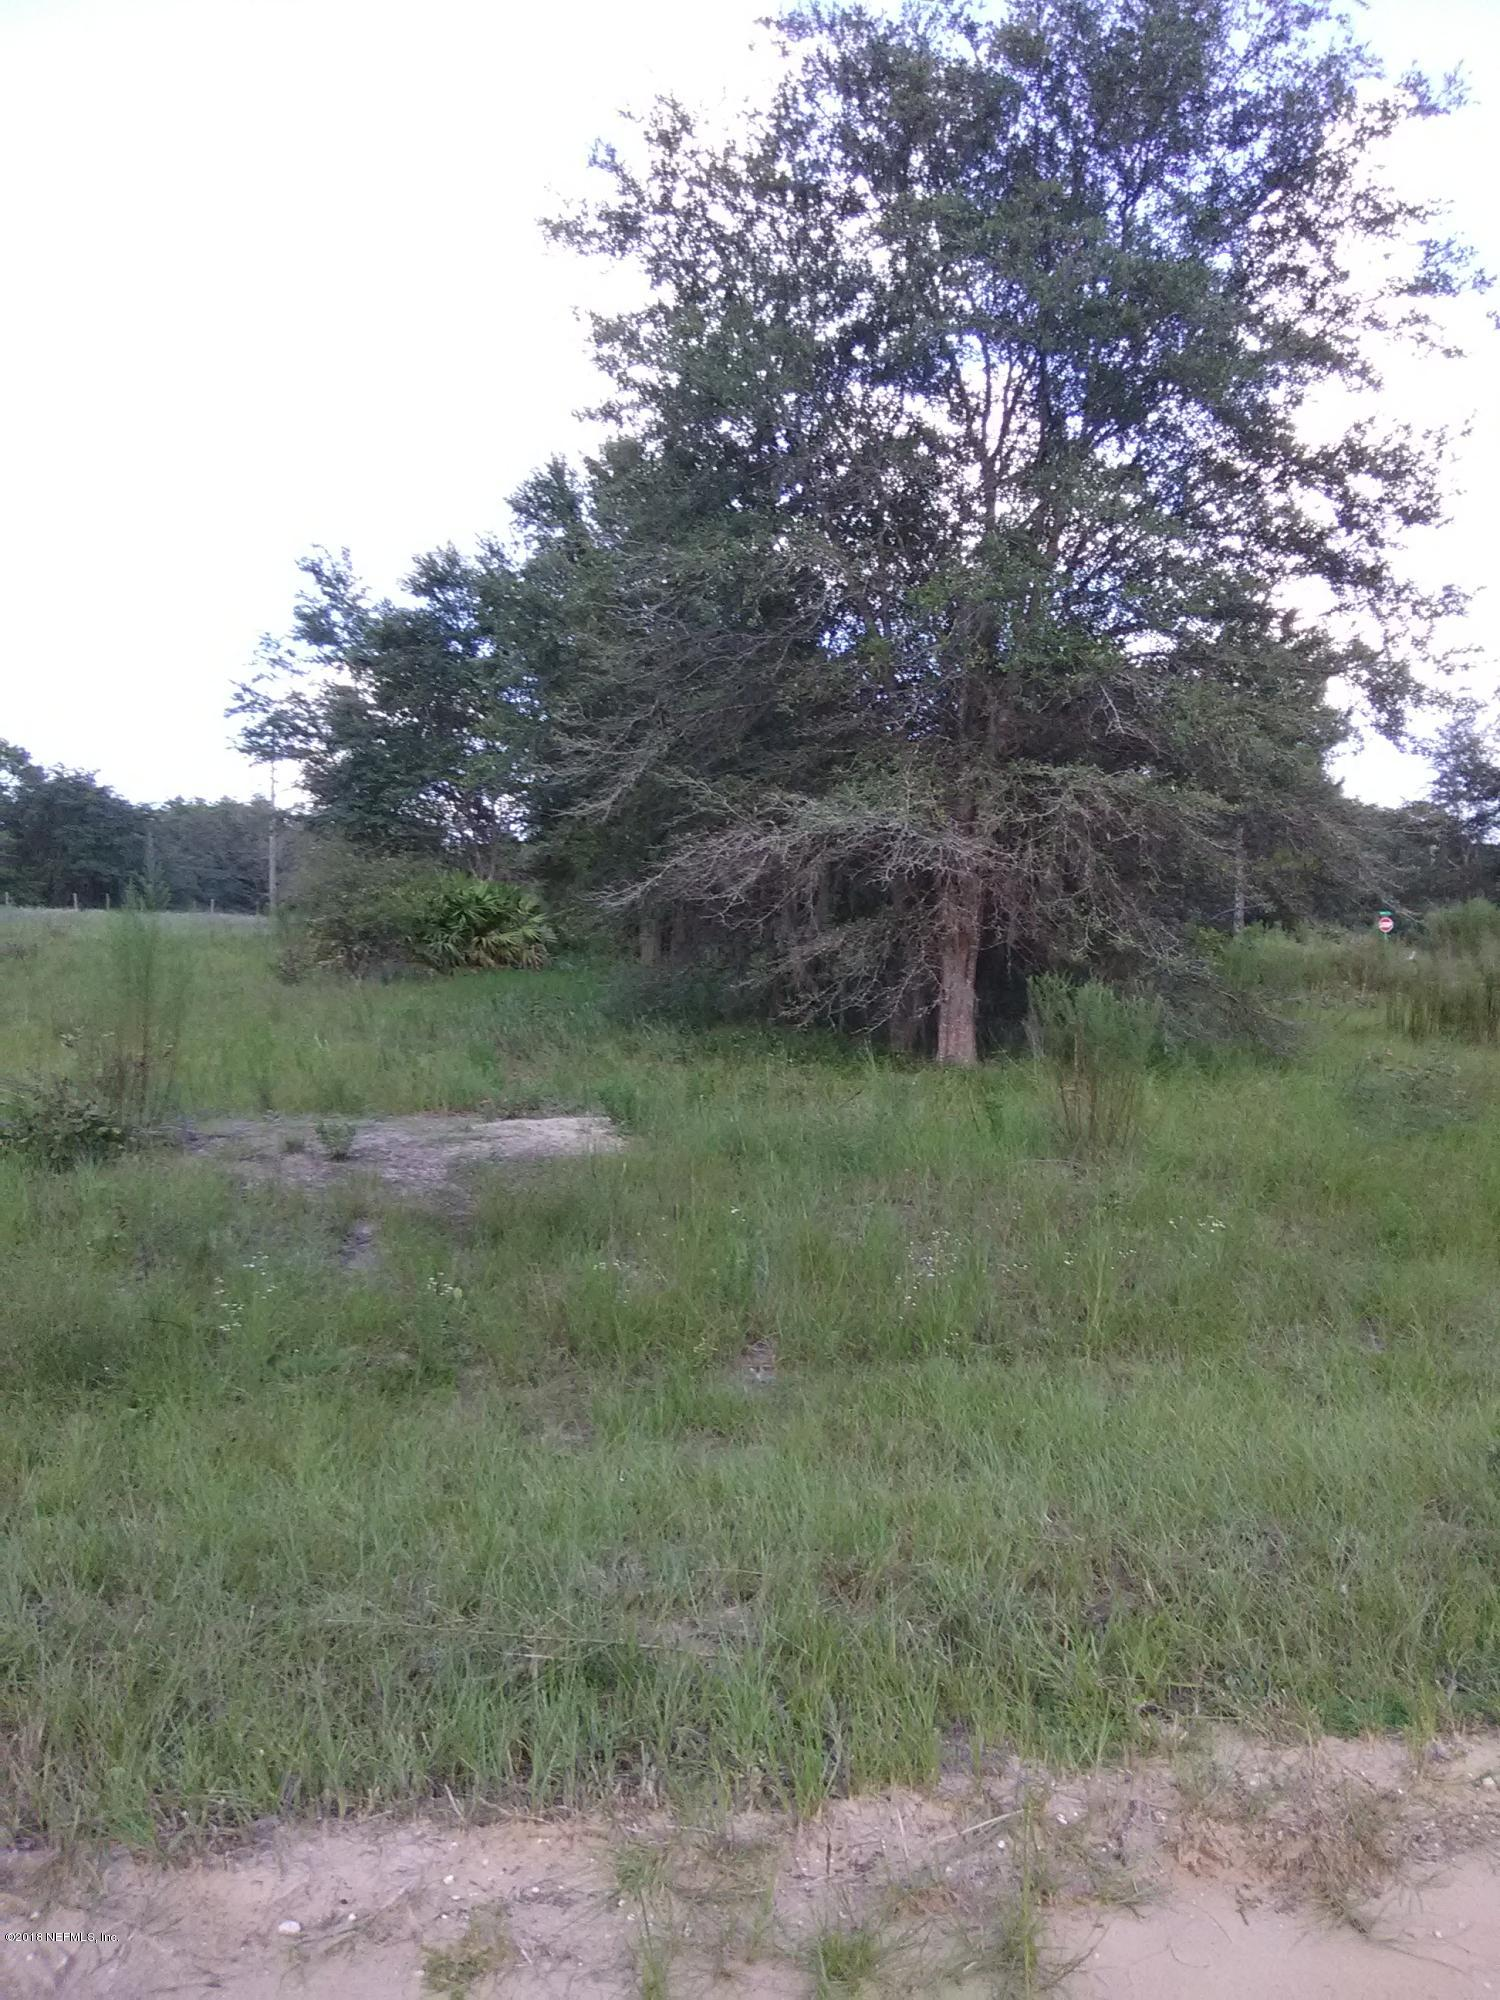 602 LENORE, INTERLACHEN, FLORIDA 32148, ,Vacant land,For sale,LENORE,920363